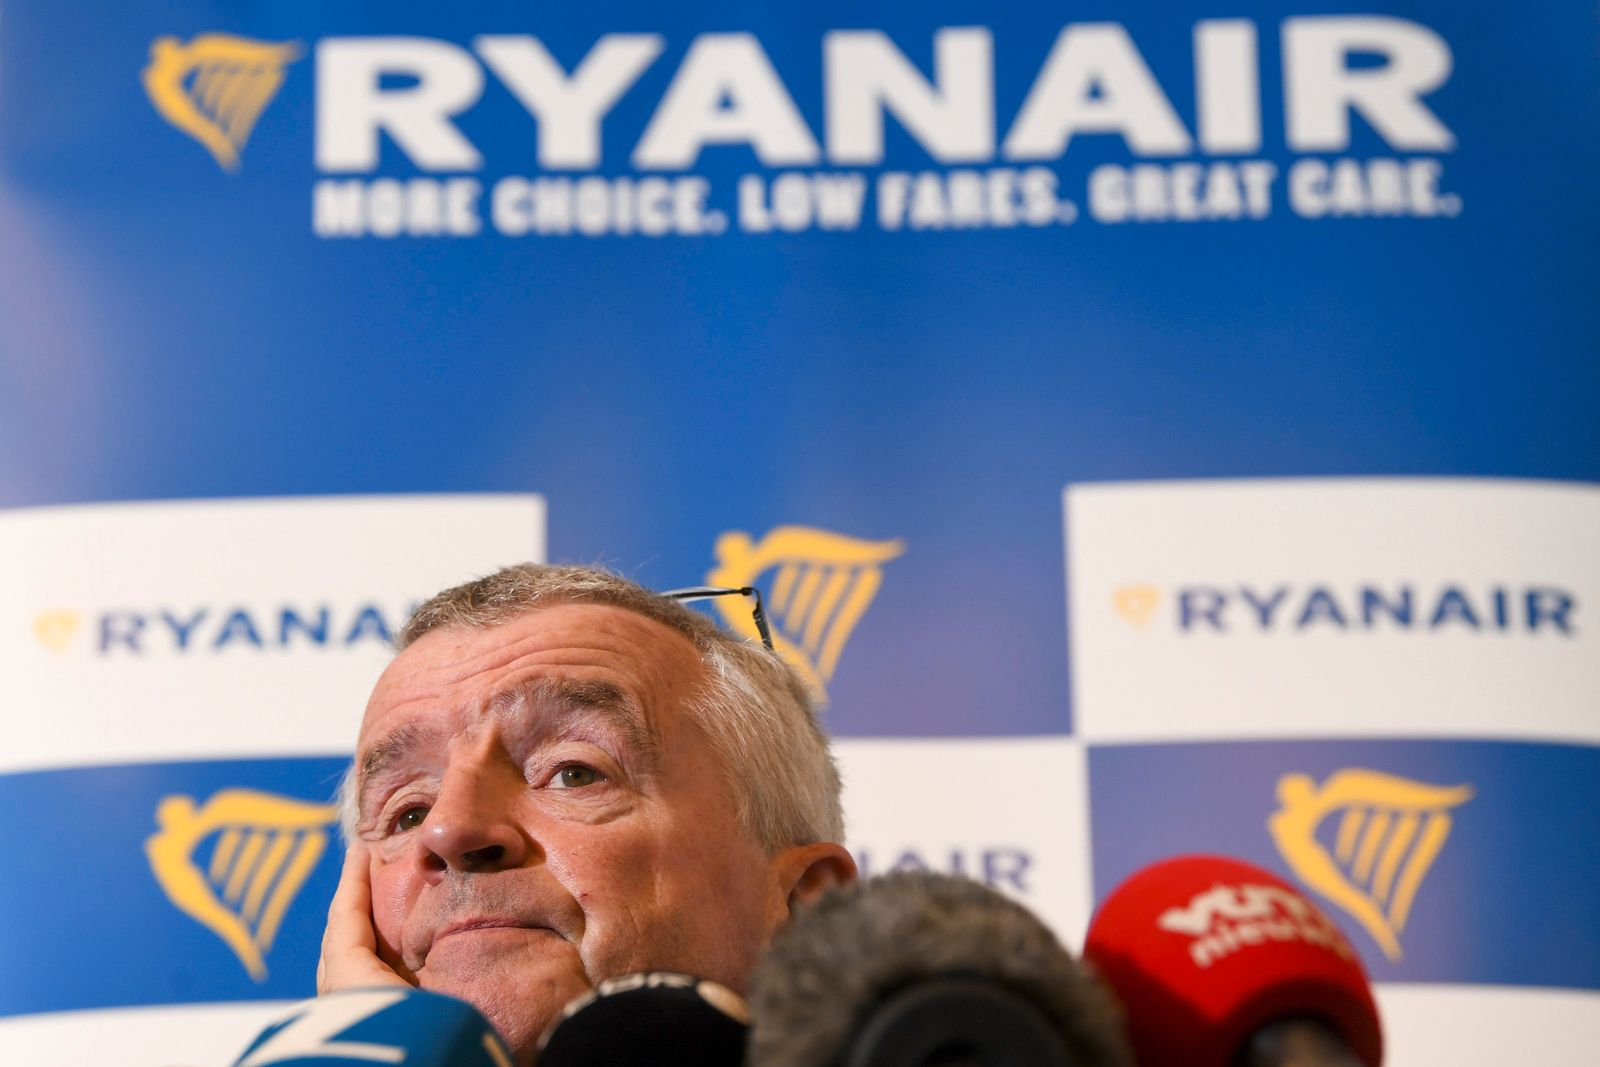 Post-Covid: Ryanair CEO Michael O'Leary bei einer Pk in Brüssel